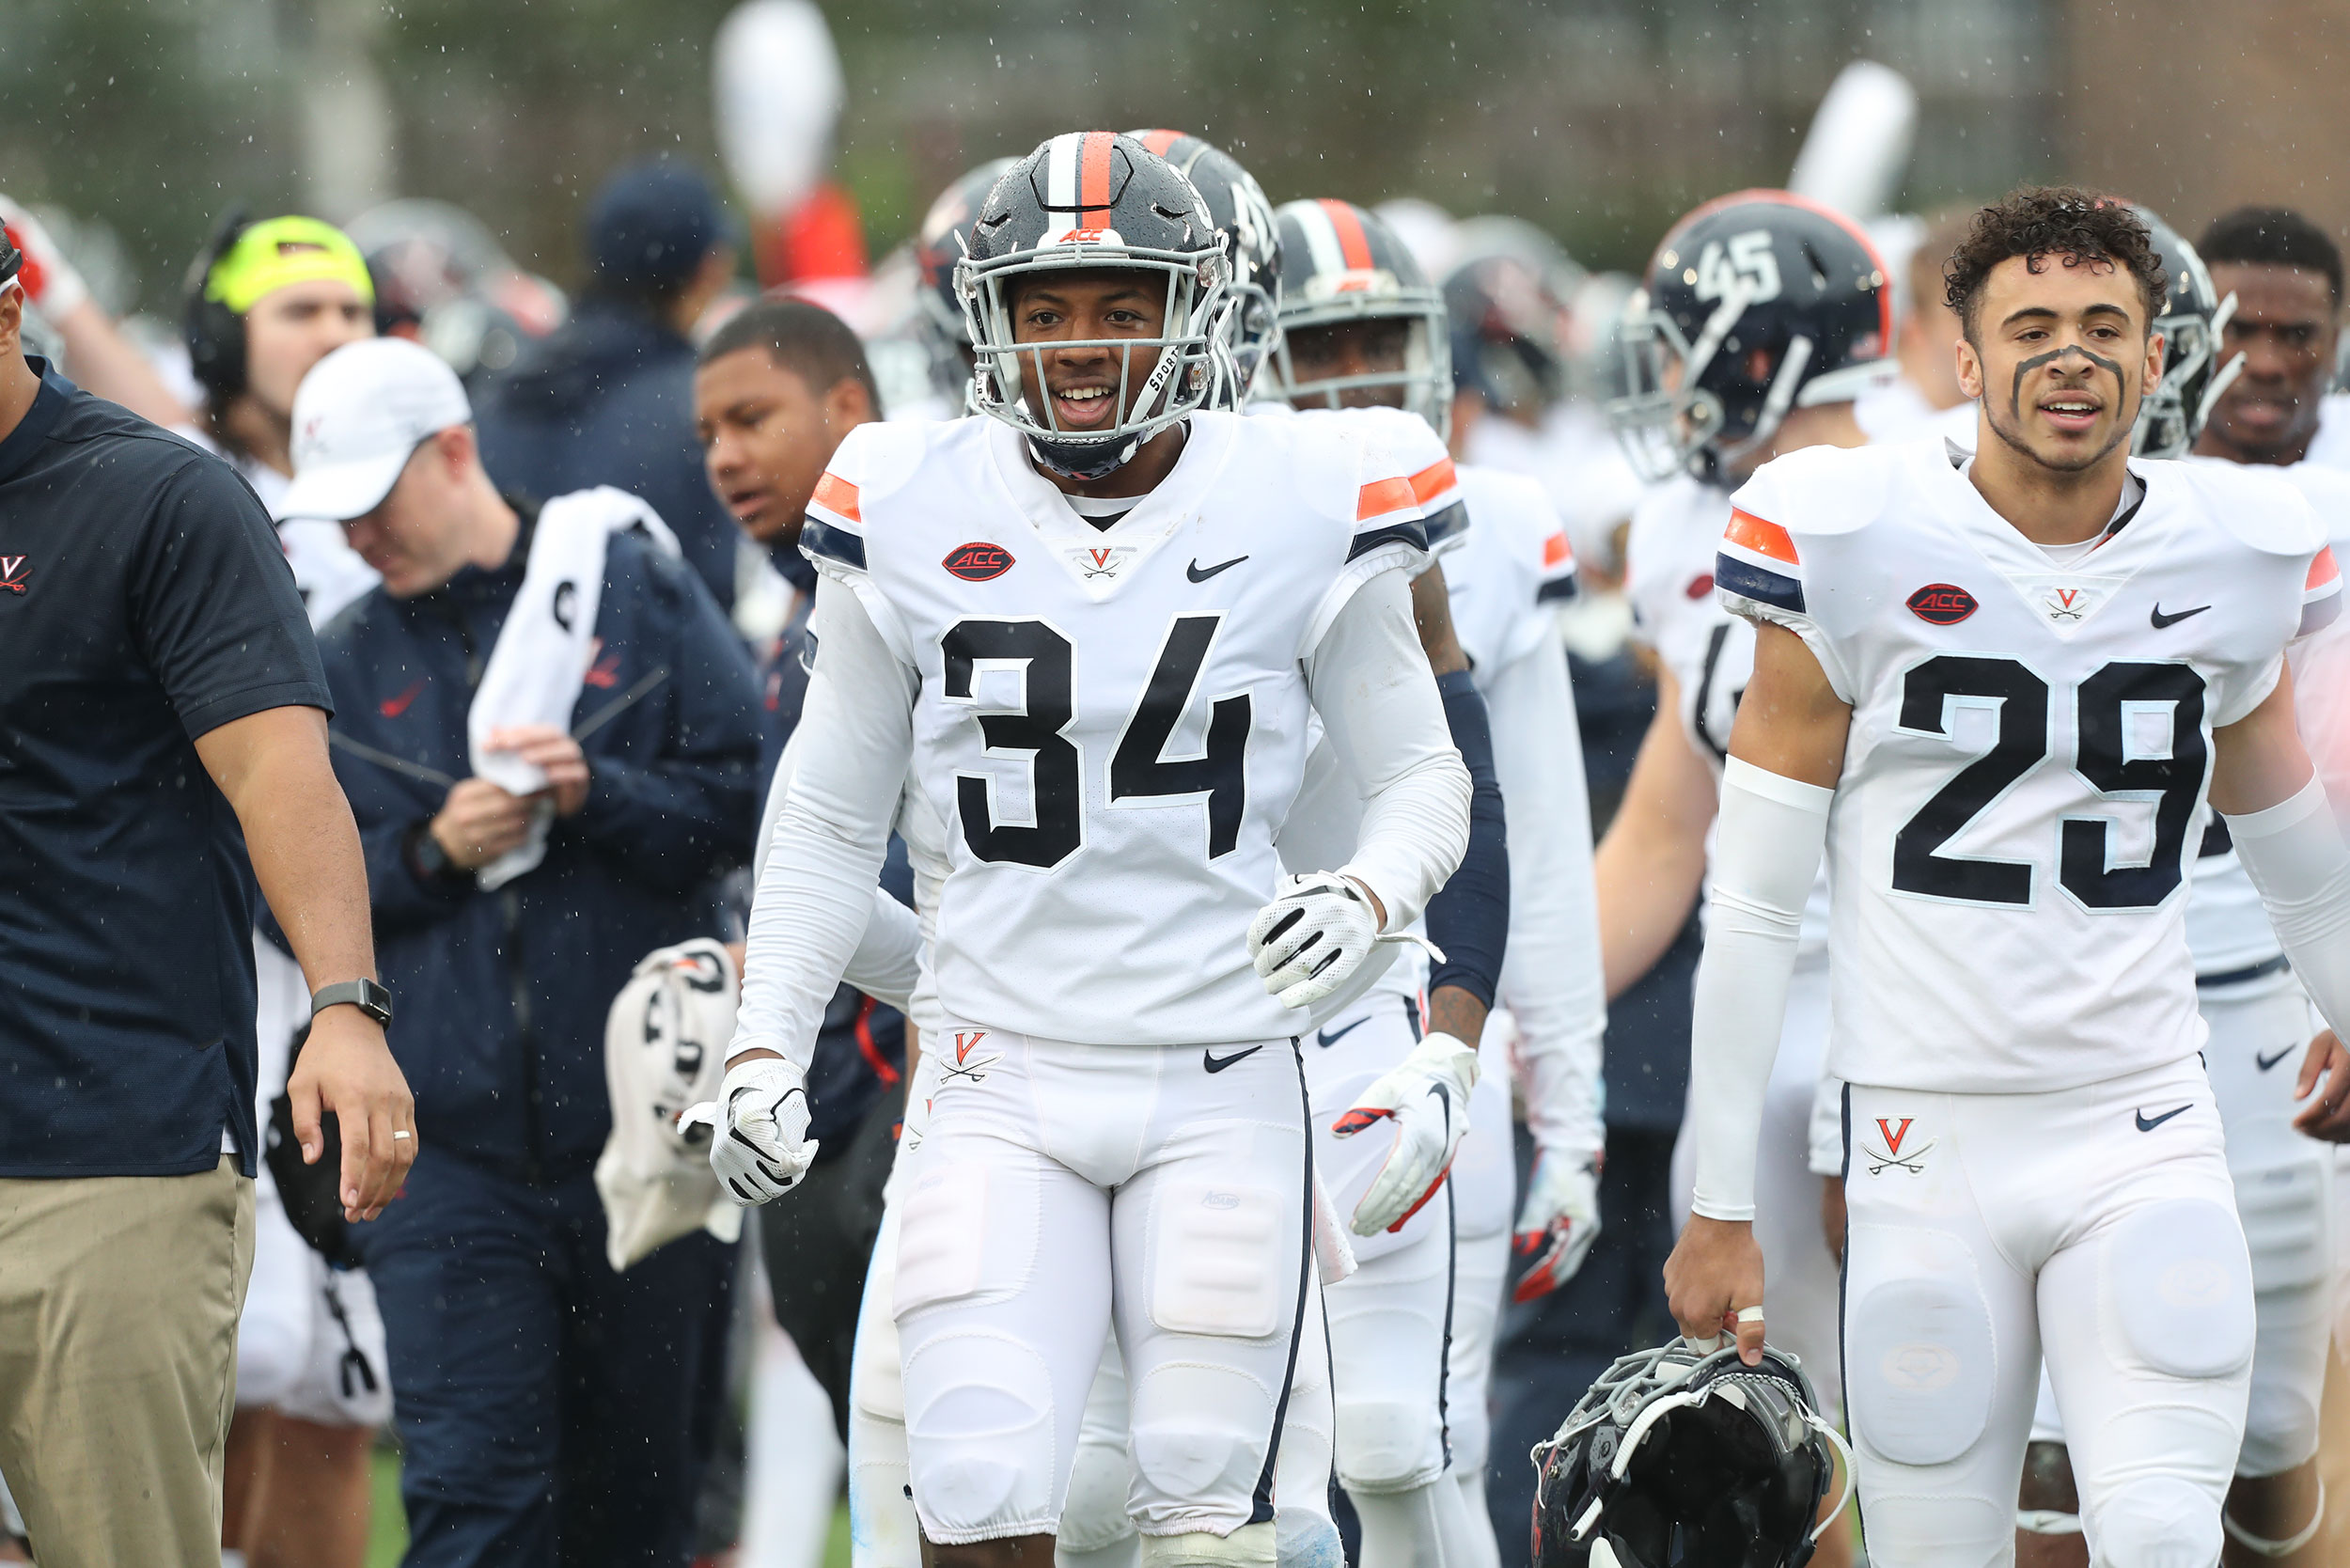 Cornerback Bryce Hall has been playing UVA football since 2016.